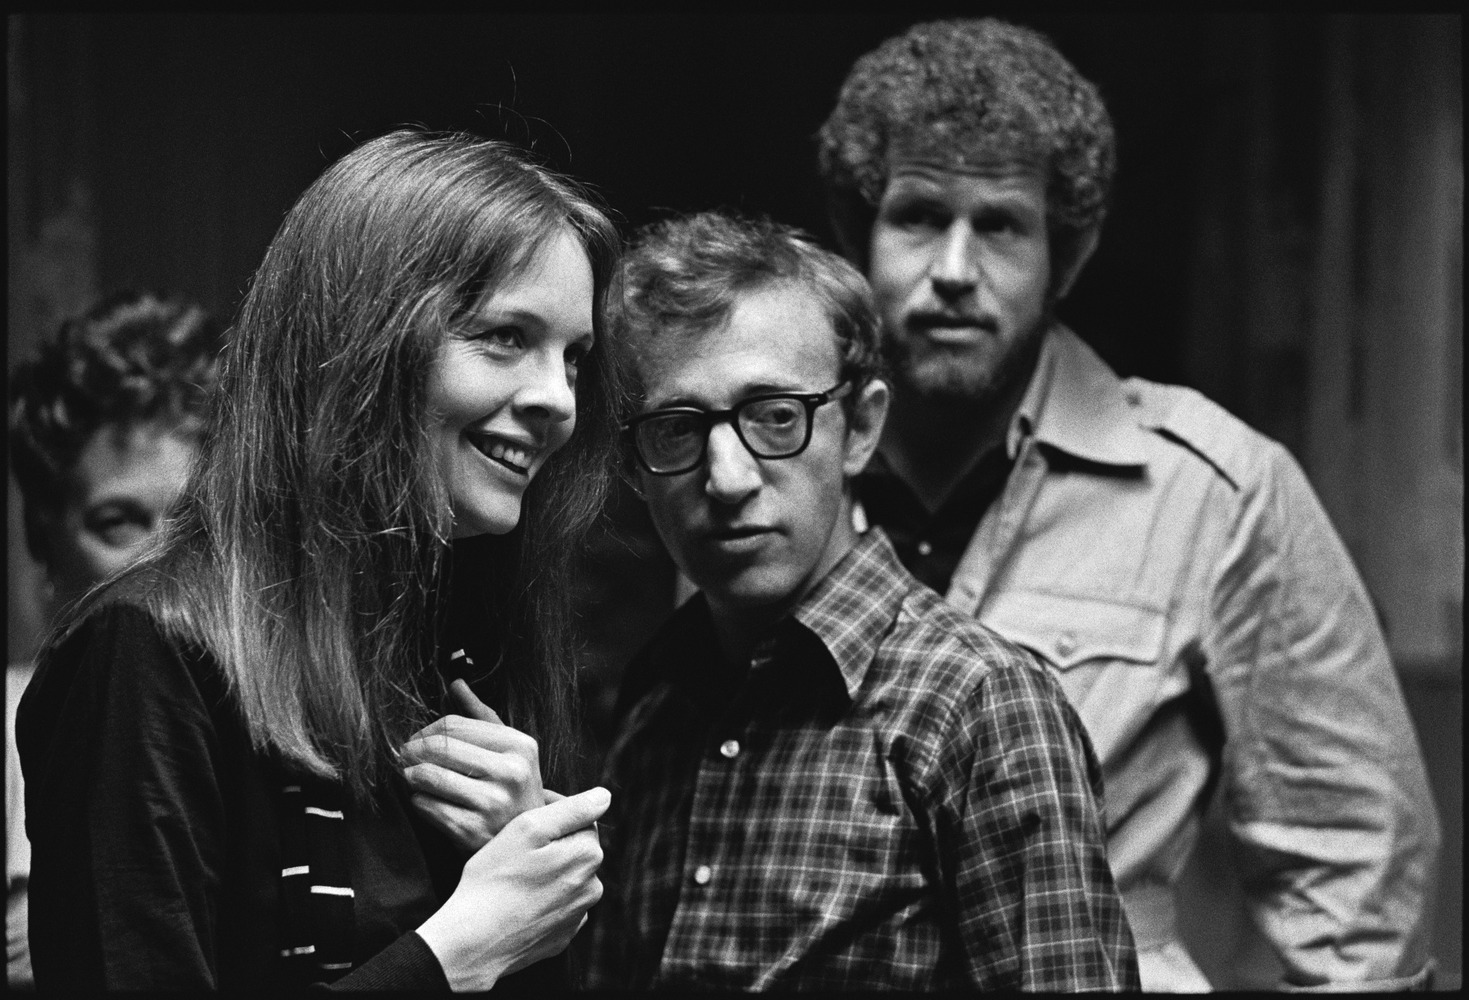 woody allens annie hall Annie hall is a 1977 american romantic comedy film directed by woody allen from a screenplay he co-wrote with marshall brickman the director co-stars as alvy.